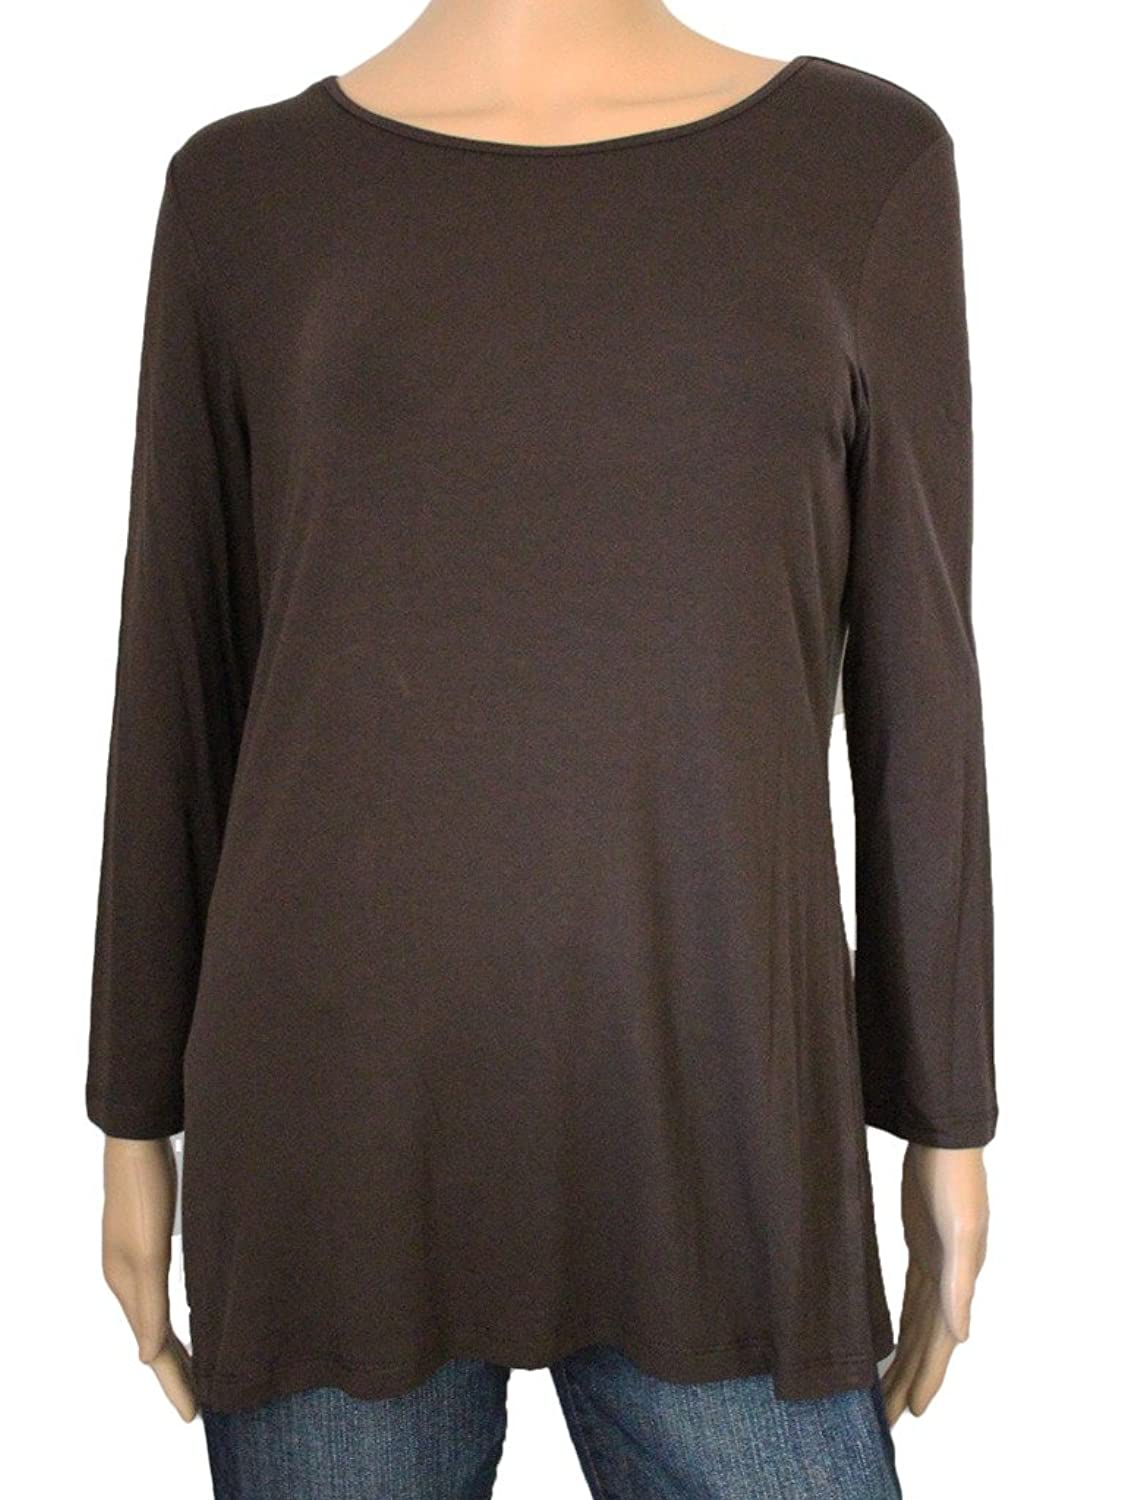 Multiples Women's Mocha Scoop Neck Top